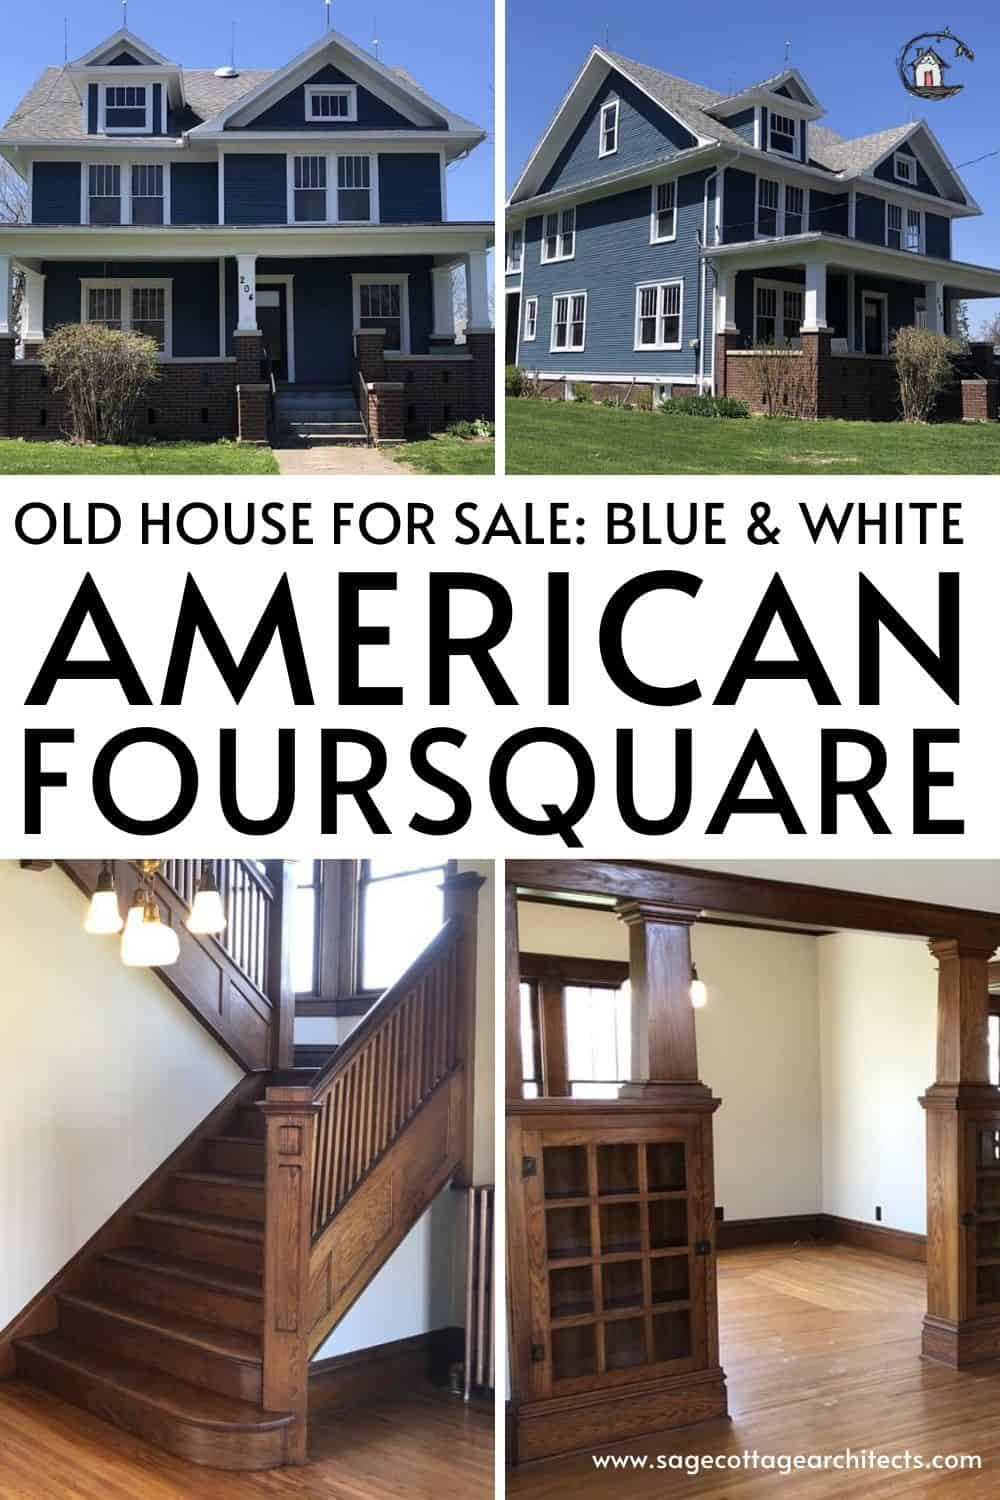 Photo collage of an American Foursquare style home.